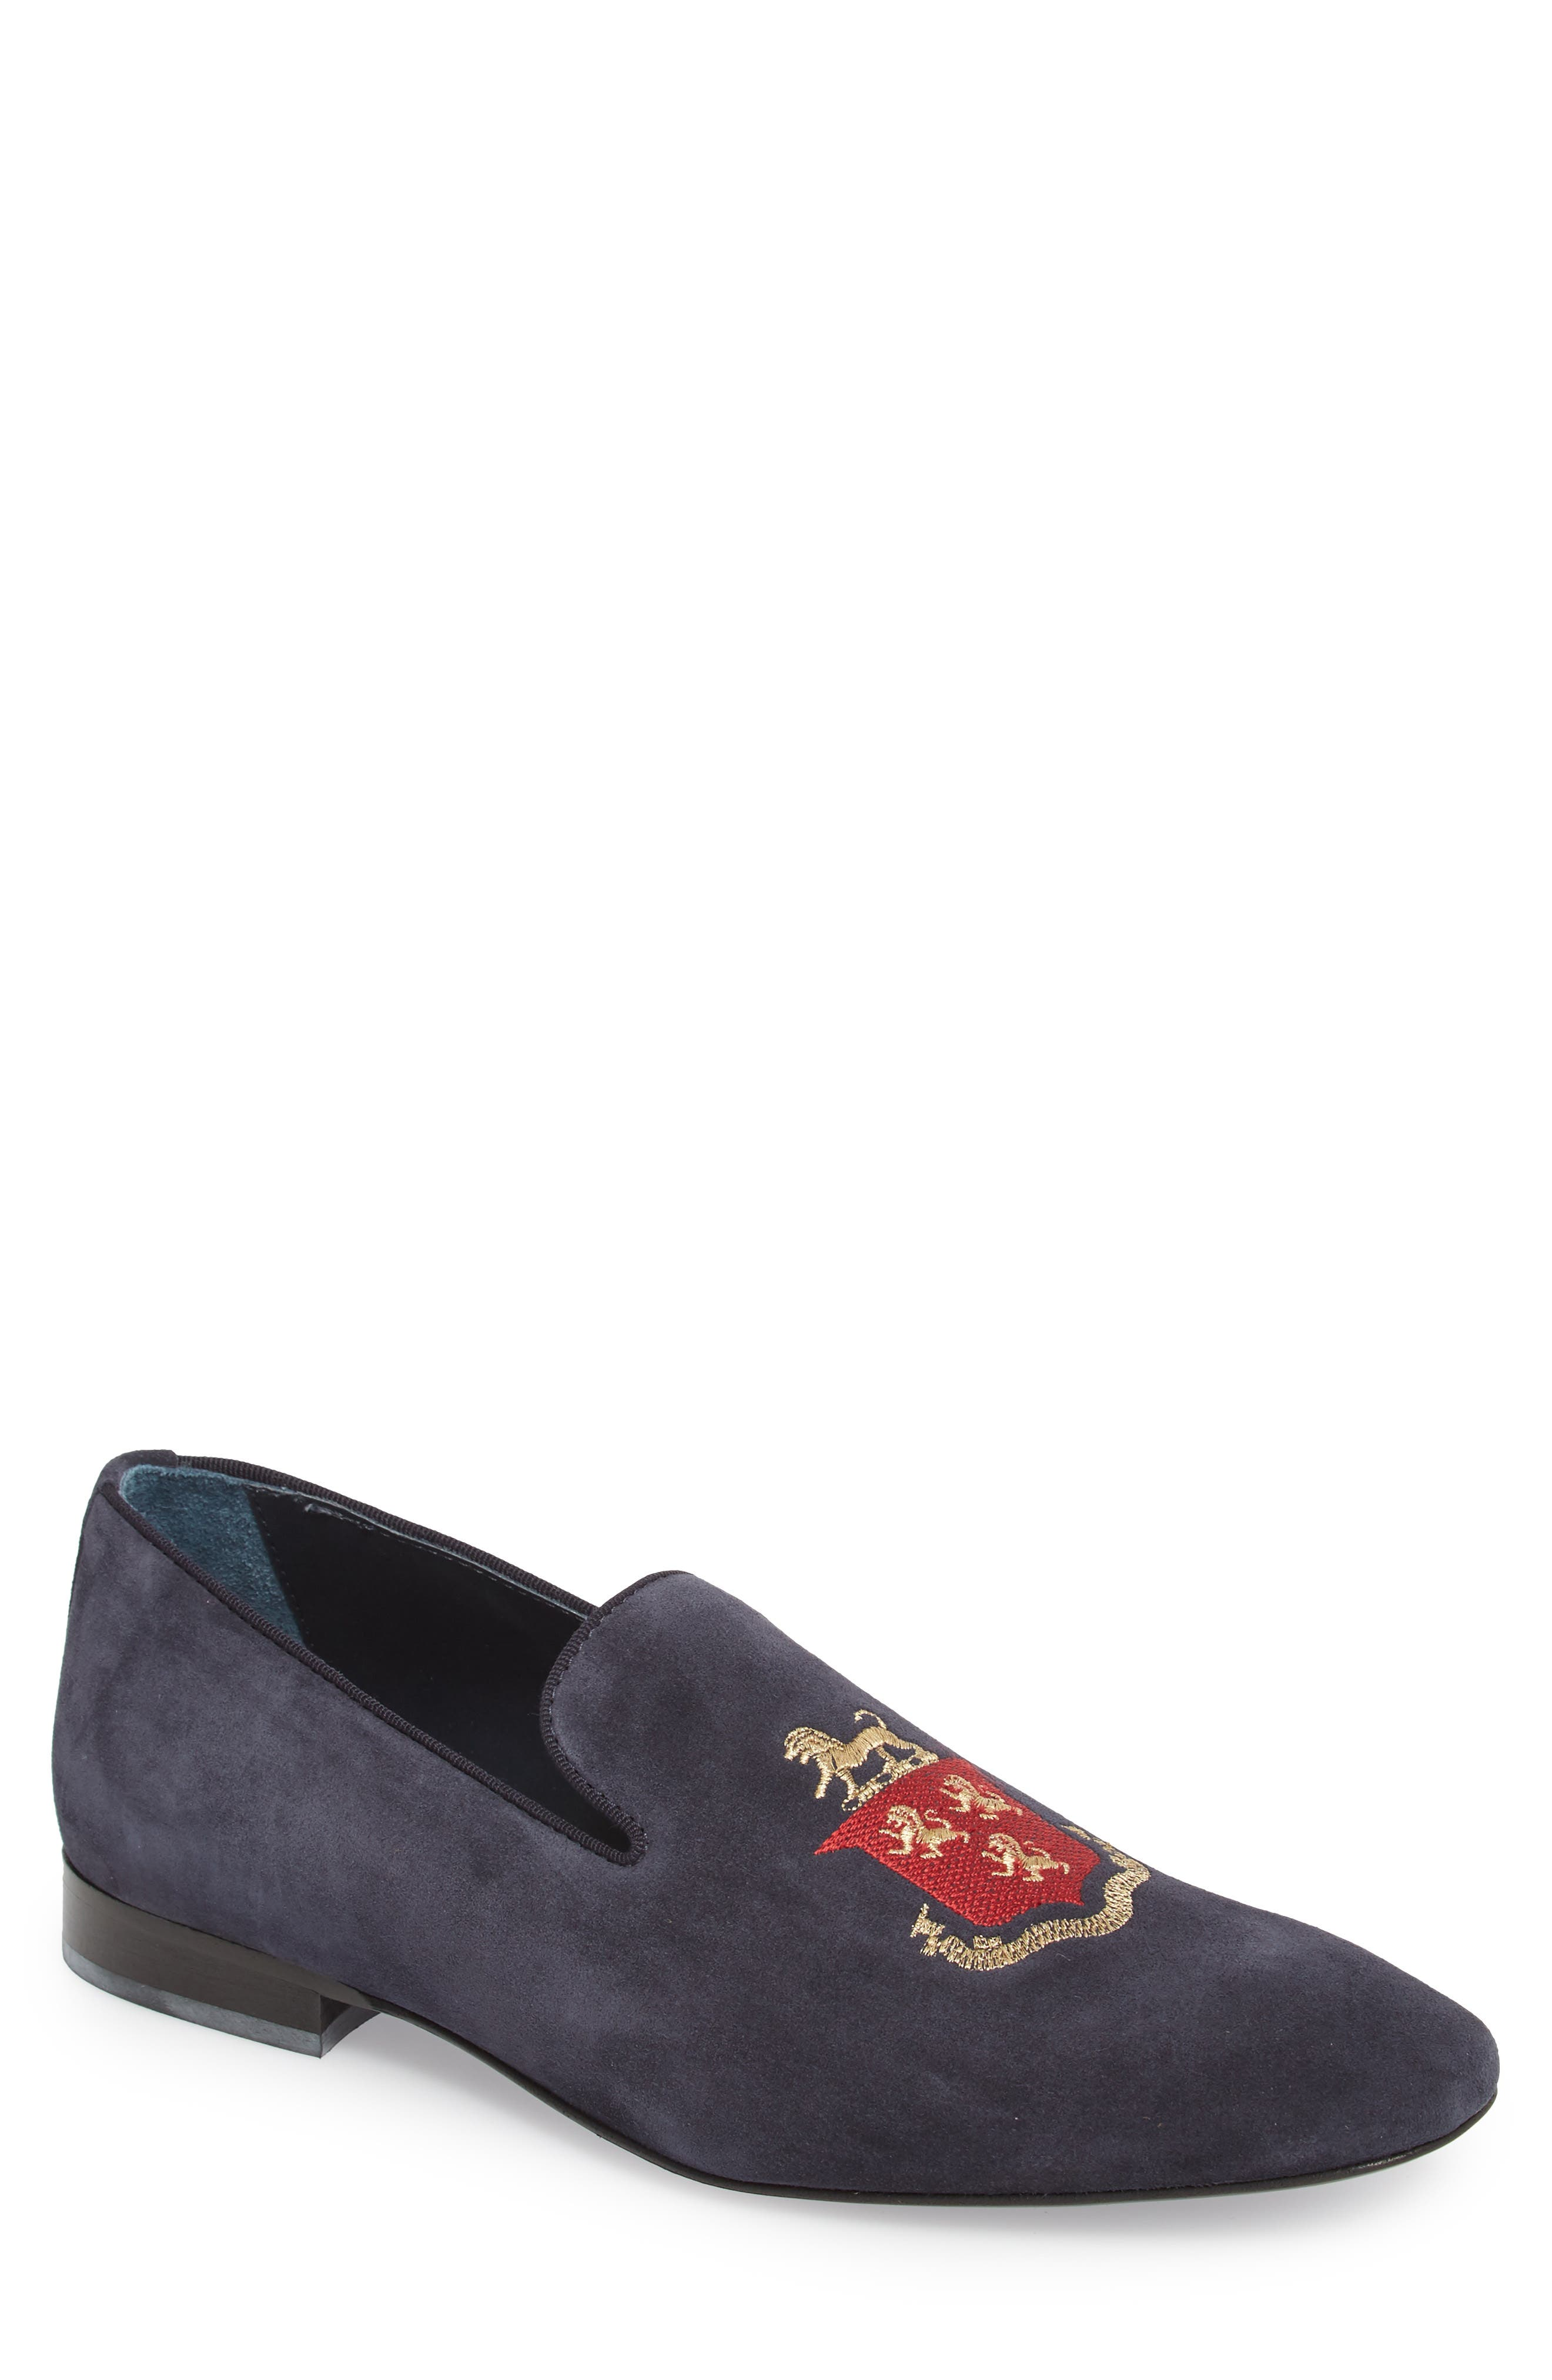 Altos Embroidered Venetian Loafer,                             Main thumbnail 1, color,                             NAVY